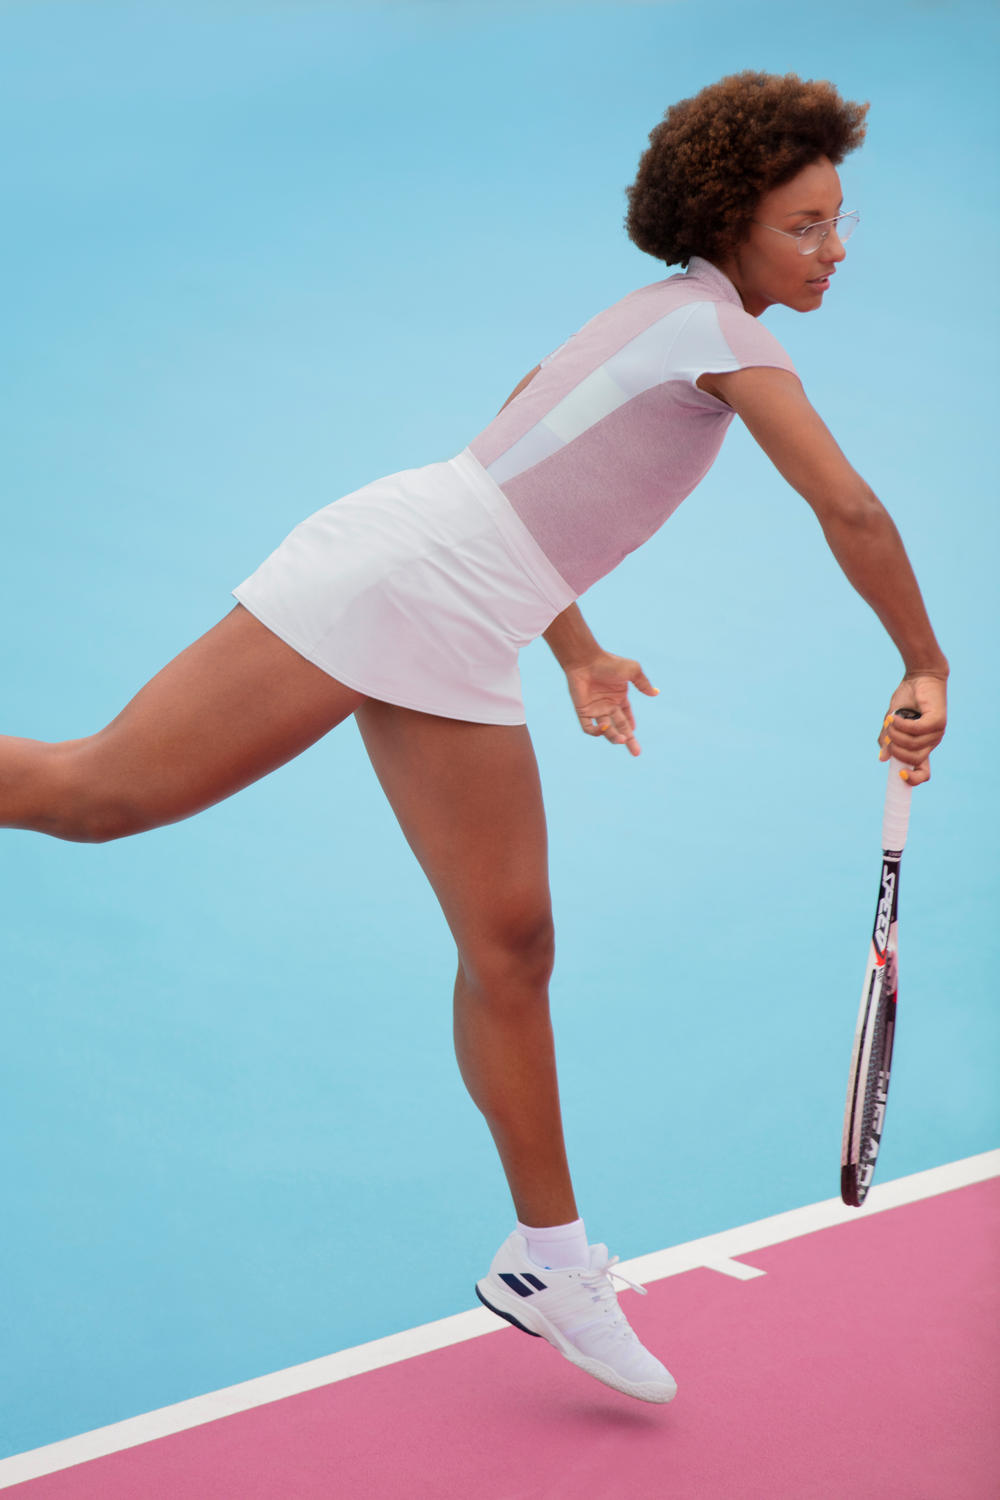 Outdoor Voices New Tennis Collection Sportswear Collection Sports Athletics Athleisure